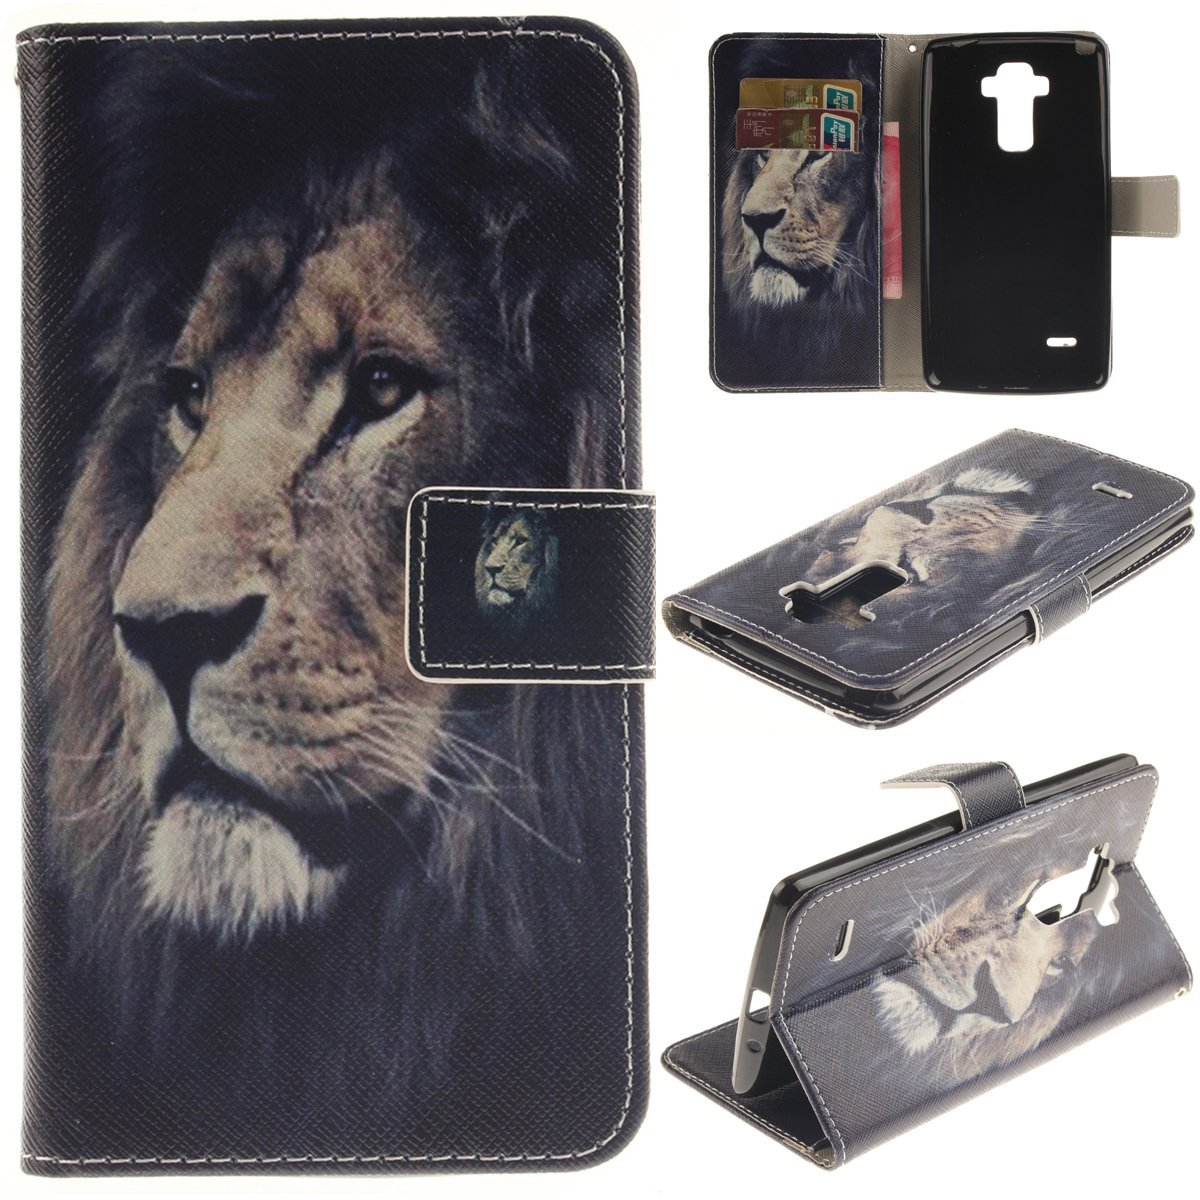 LG G Stylo Case,LG G4 Stylus / LG LS770 Case,Gift_Source [Lion] Fashion PU Leather Wallet Flip Protective Skin Case with Card Slots Holder For LG G Stylo / LG G4 Stylus (LS770) (G4 Note)